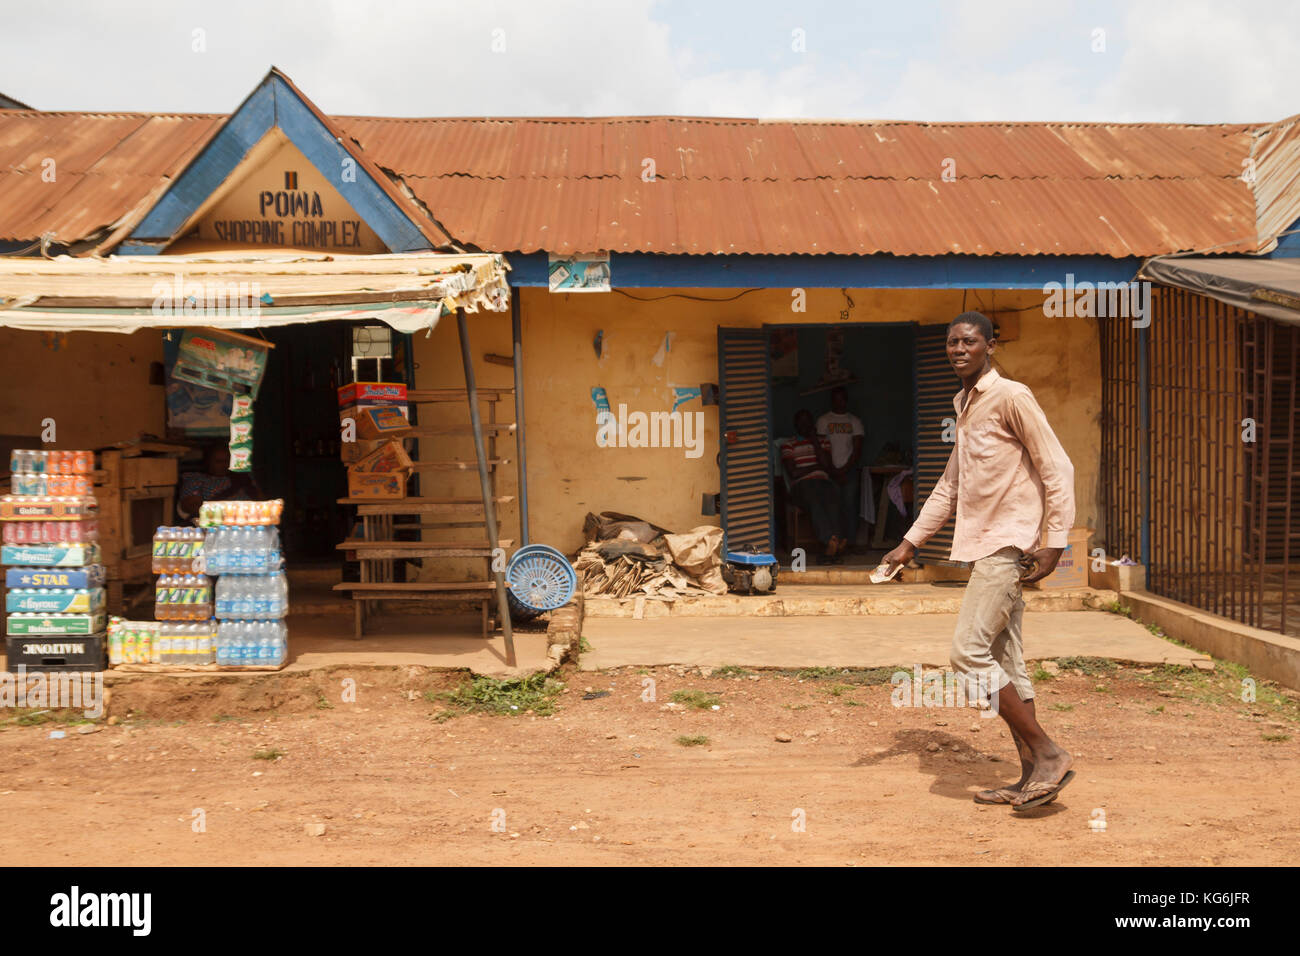 LAGOS, NIGERIA - JULY 25, 2012: Local store with different drinks in Lagos, and nigerian man walking in the street - Stock Image